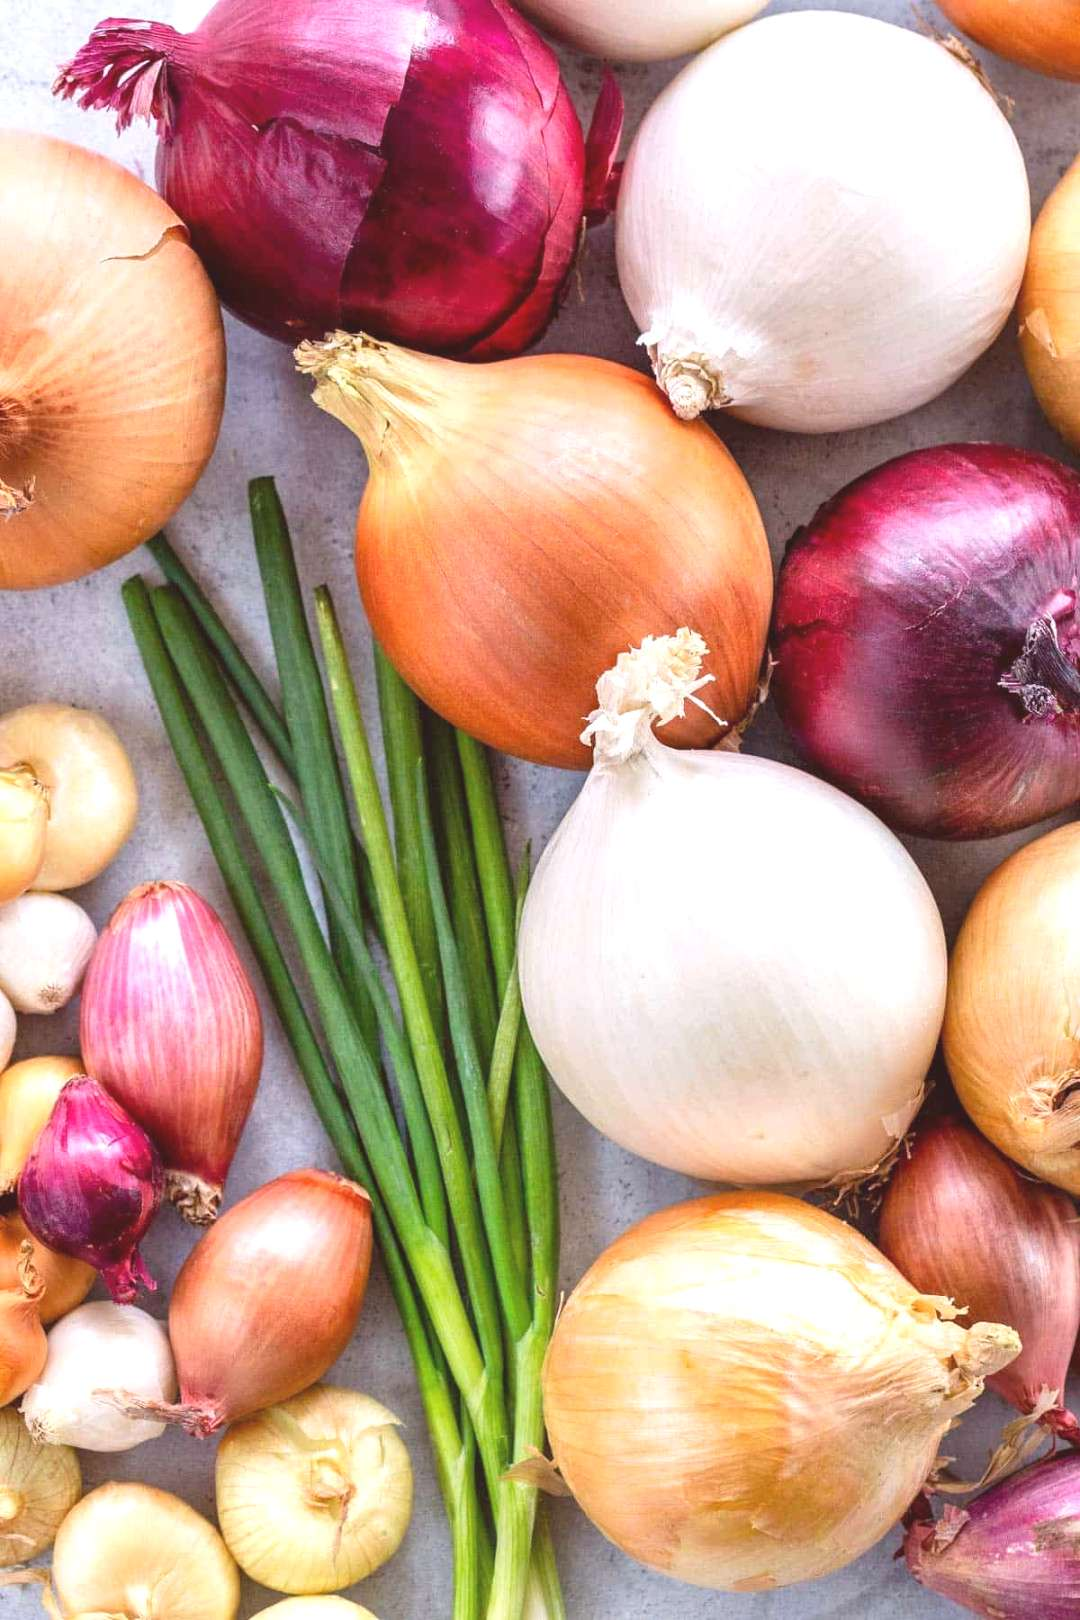 There are several types of onions and you can use most of them in similar ways, but they all have t